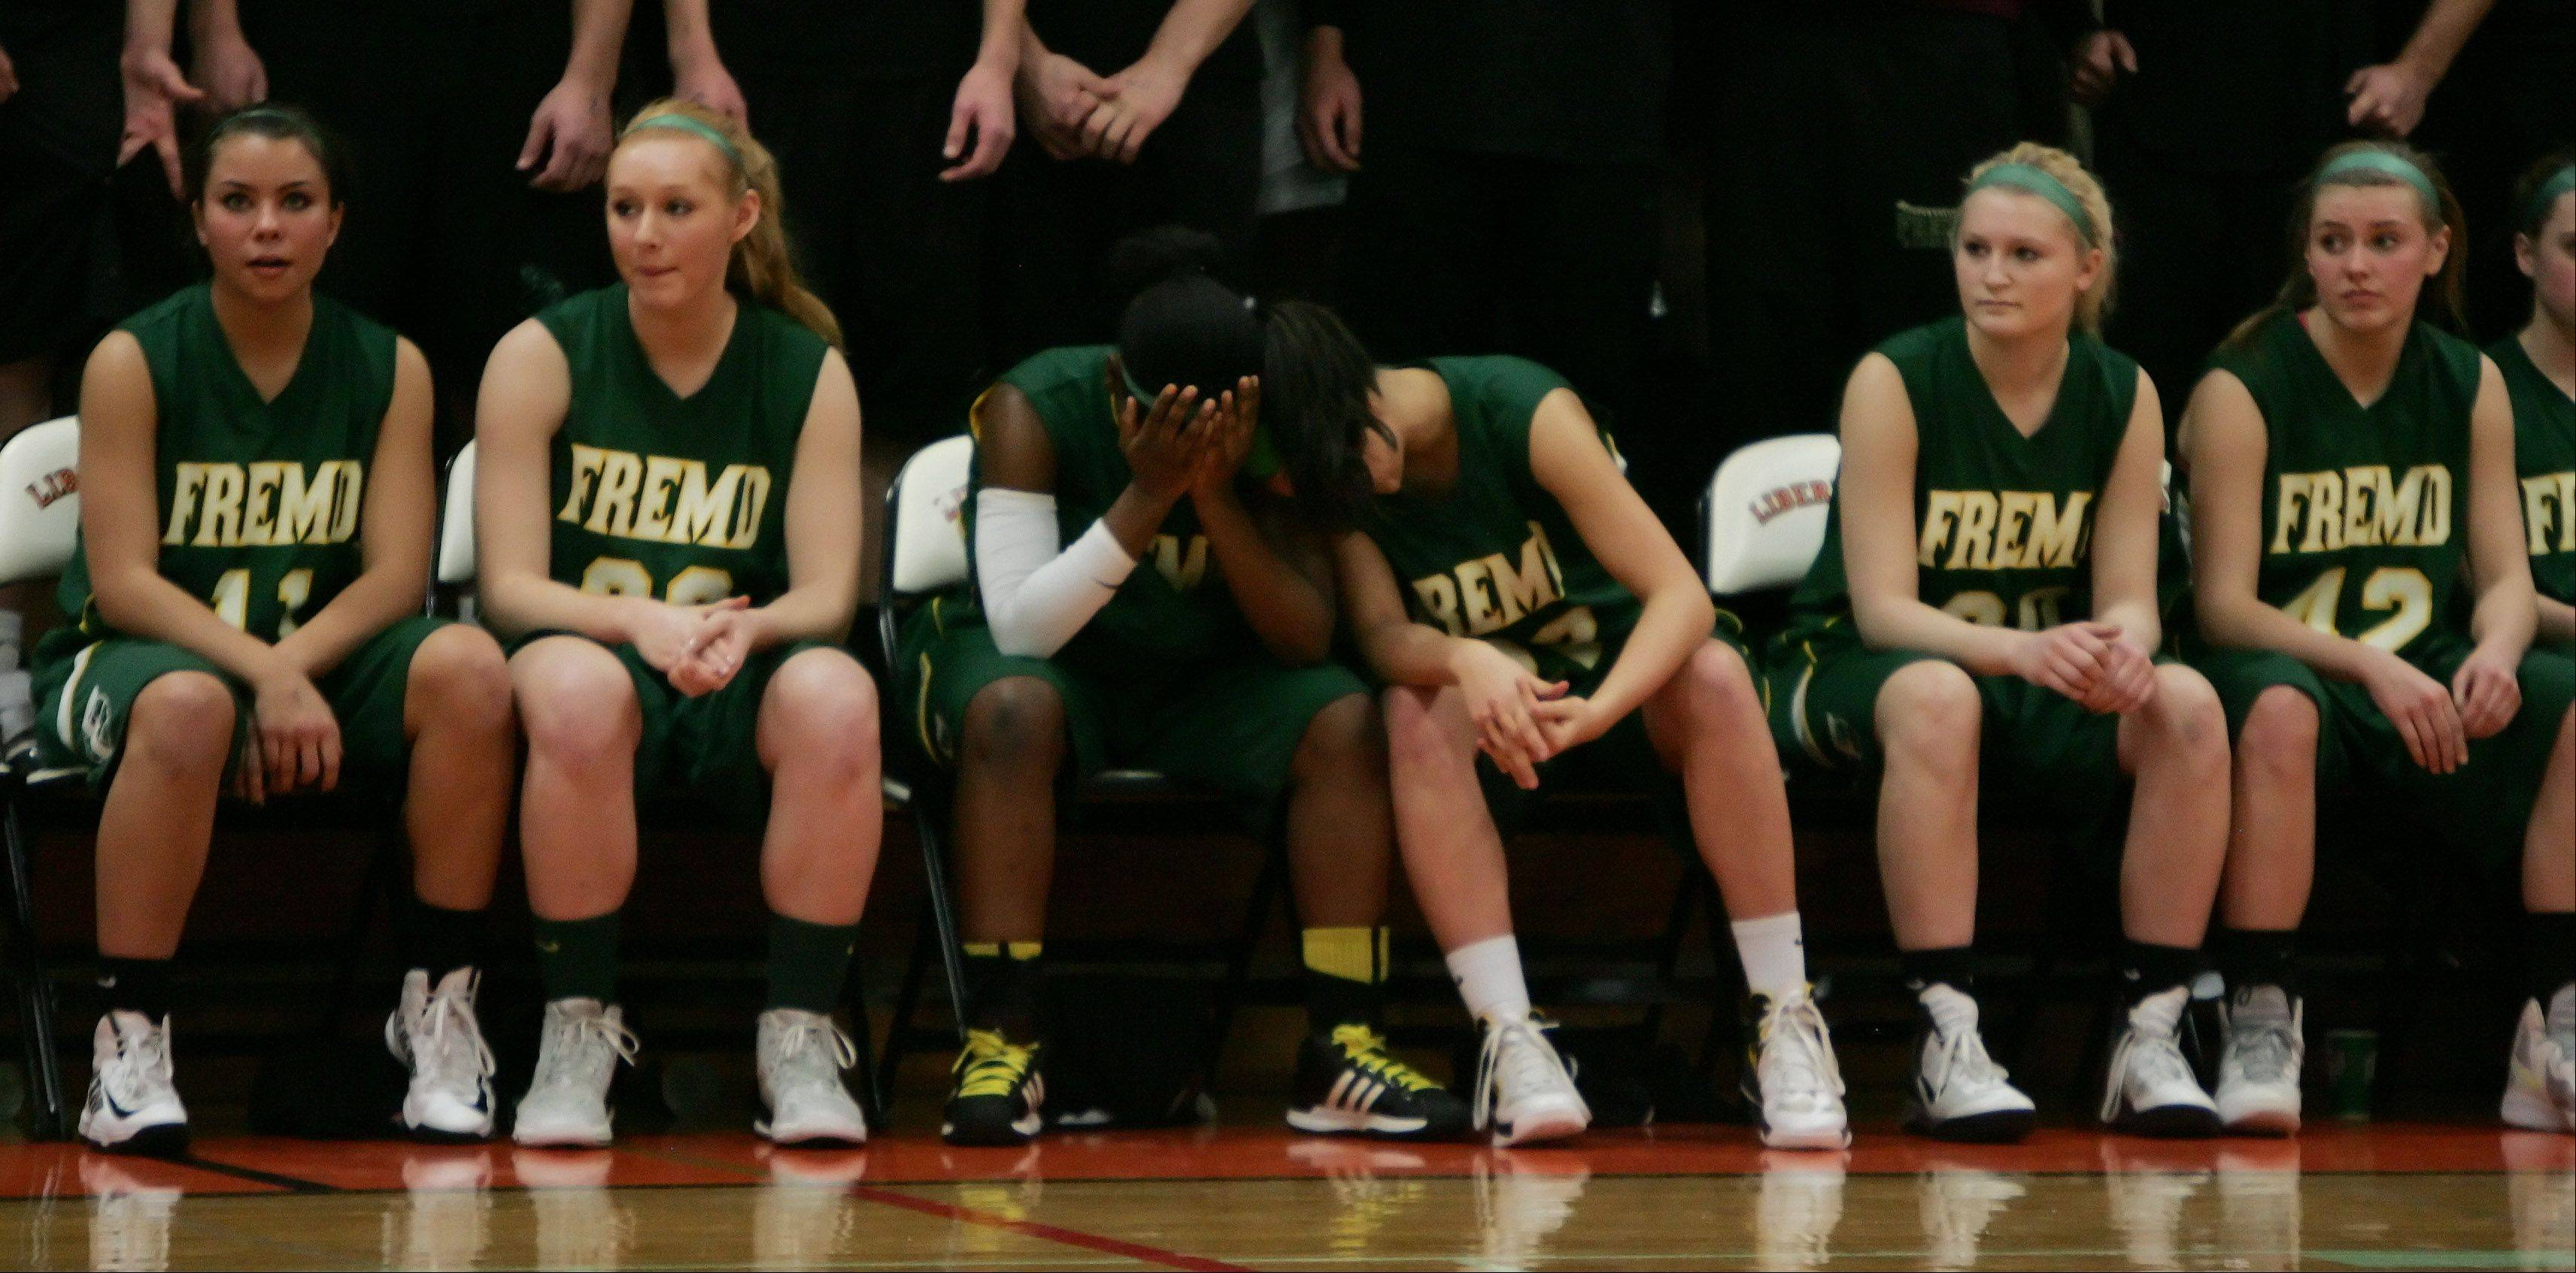 Fremd players on the bench watch as the game comes to end.